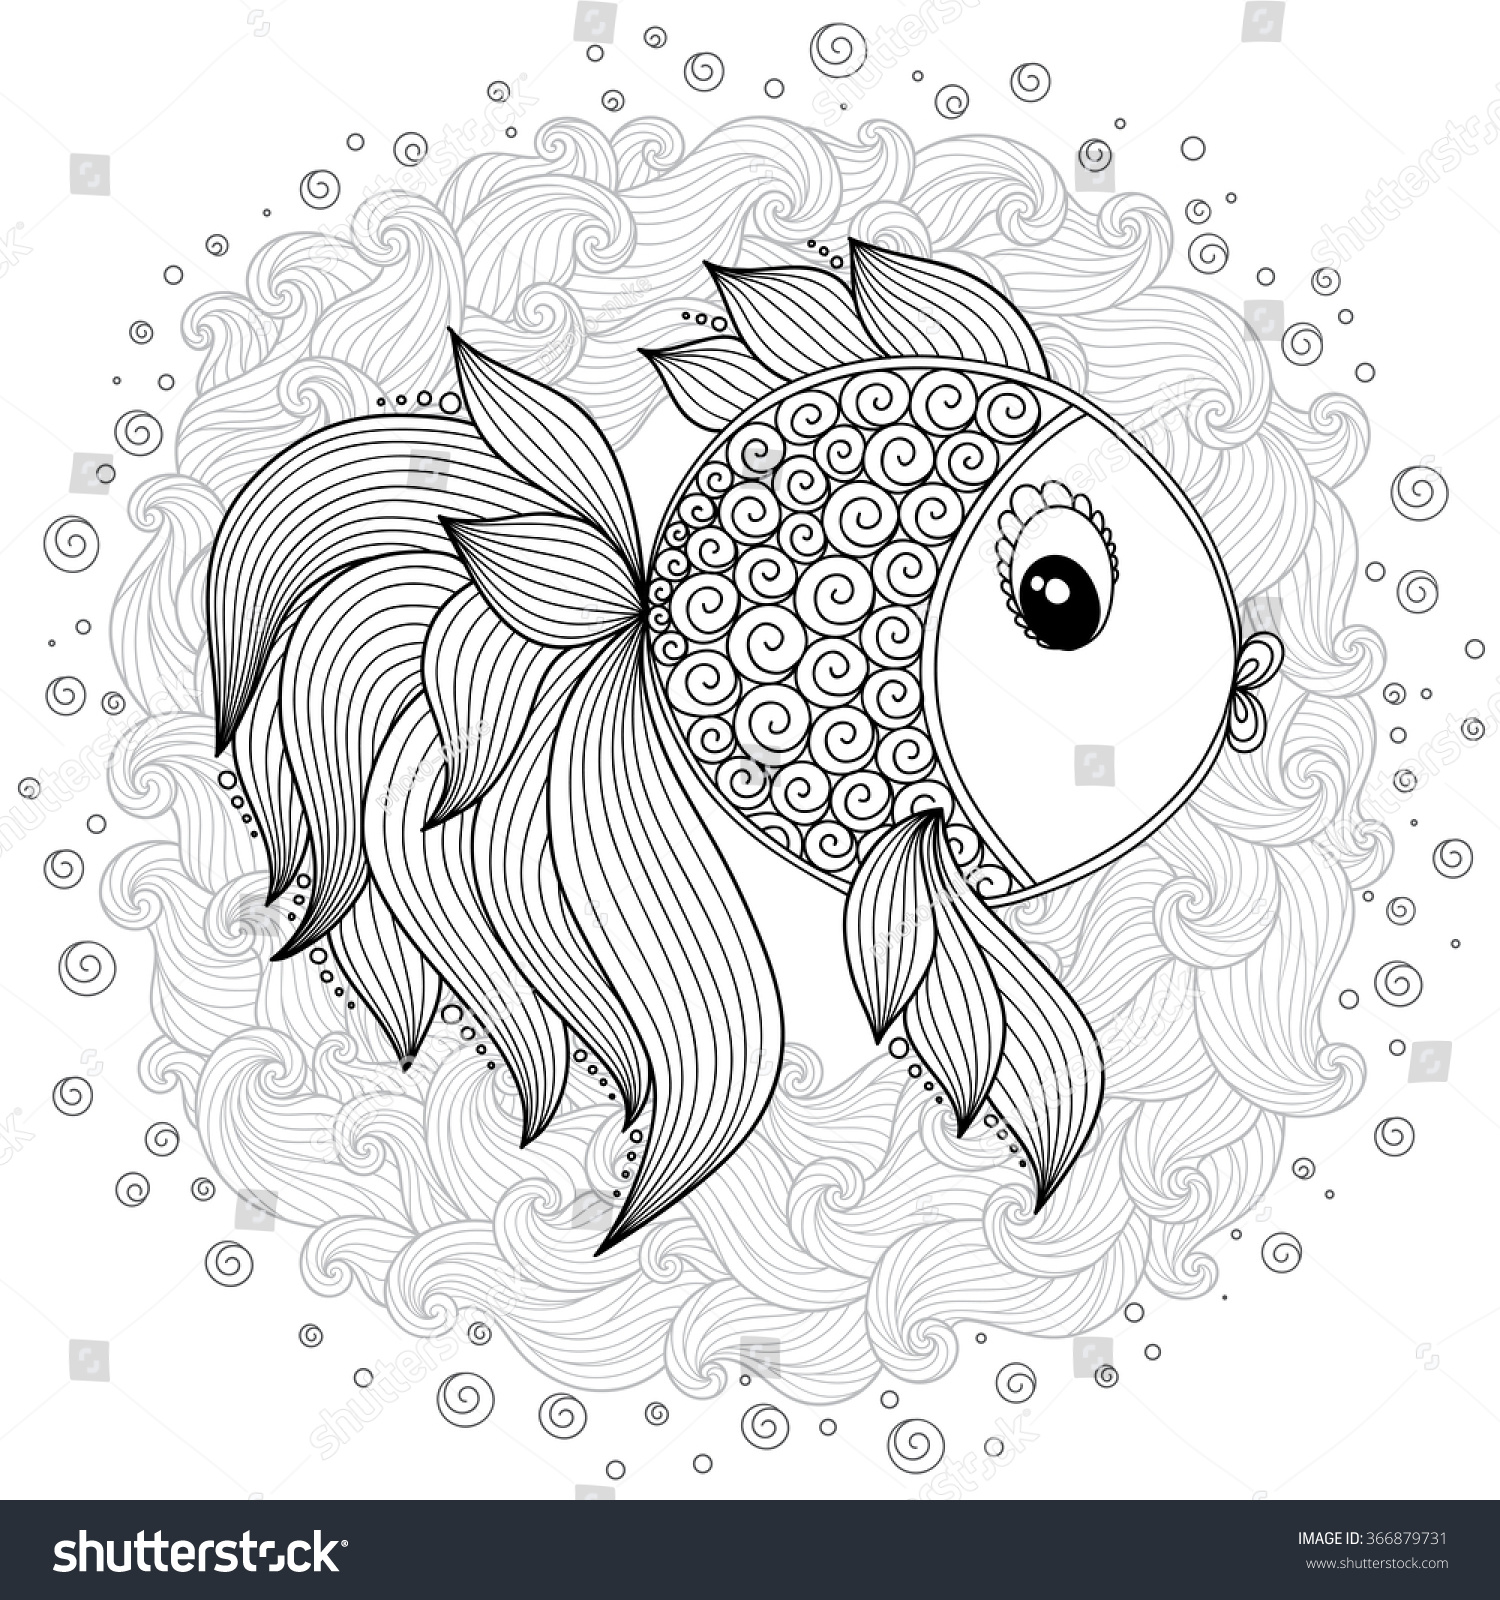 Coloring book pages of fish - Pattern For Coloring Book Coloring Book Pages For Kids And Adults Vector Cute Cartoon